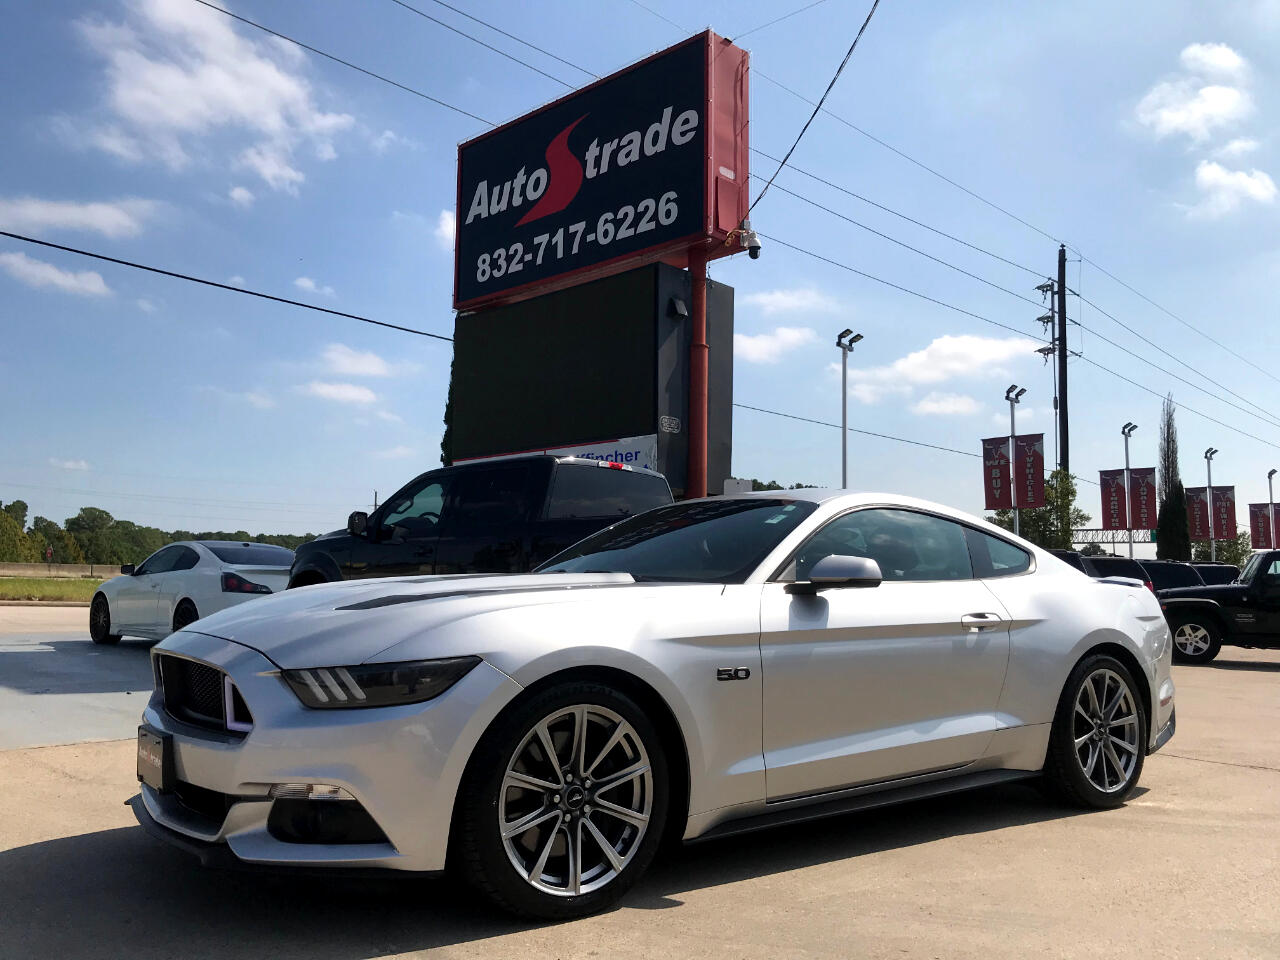 Ford Mustang 2dr Fastback GT Premium 2015